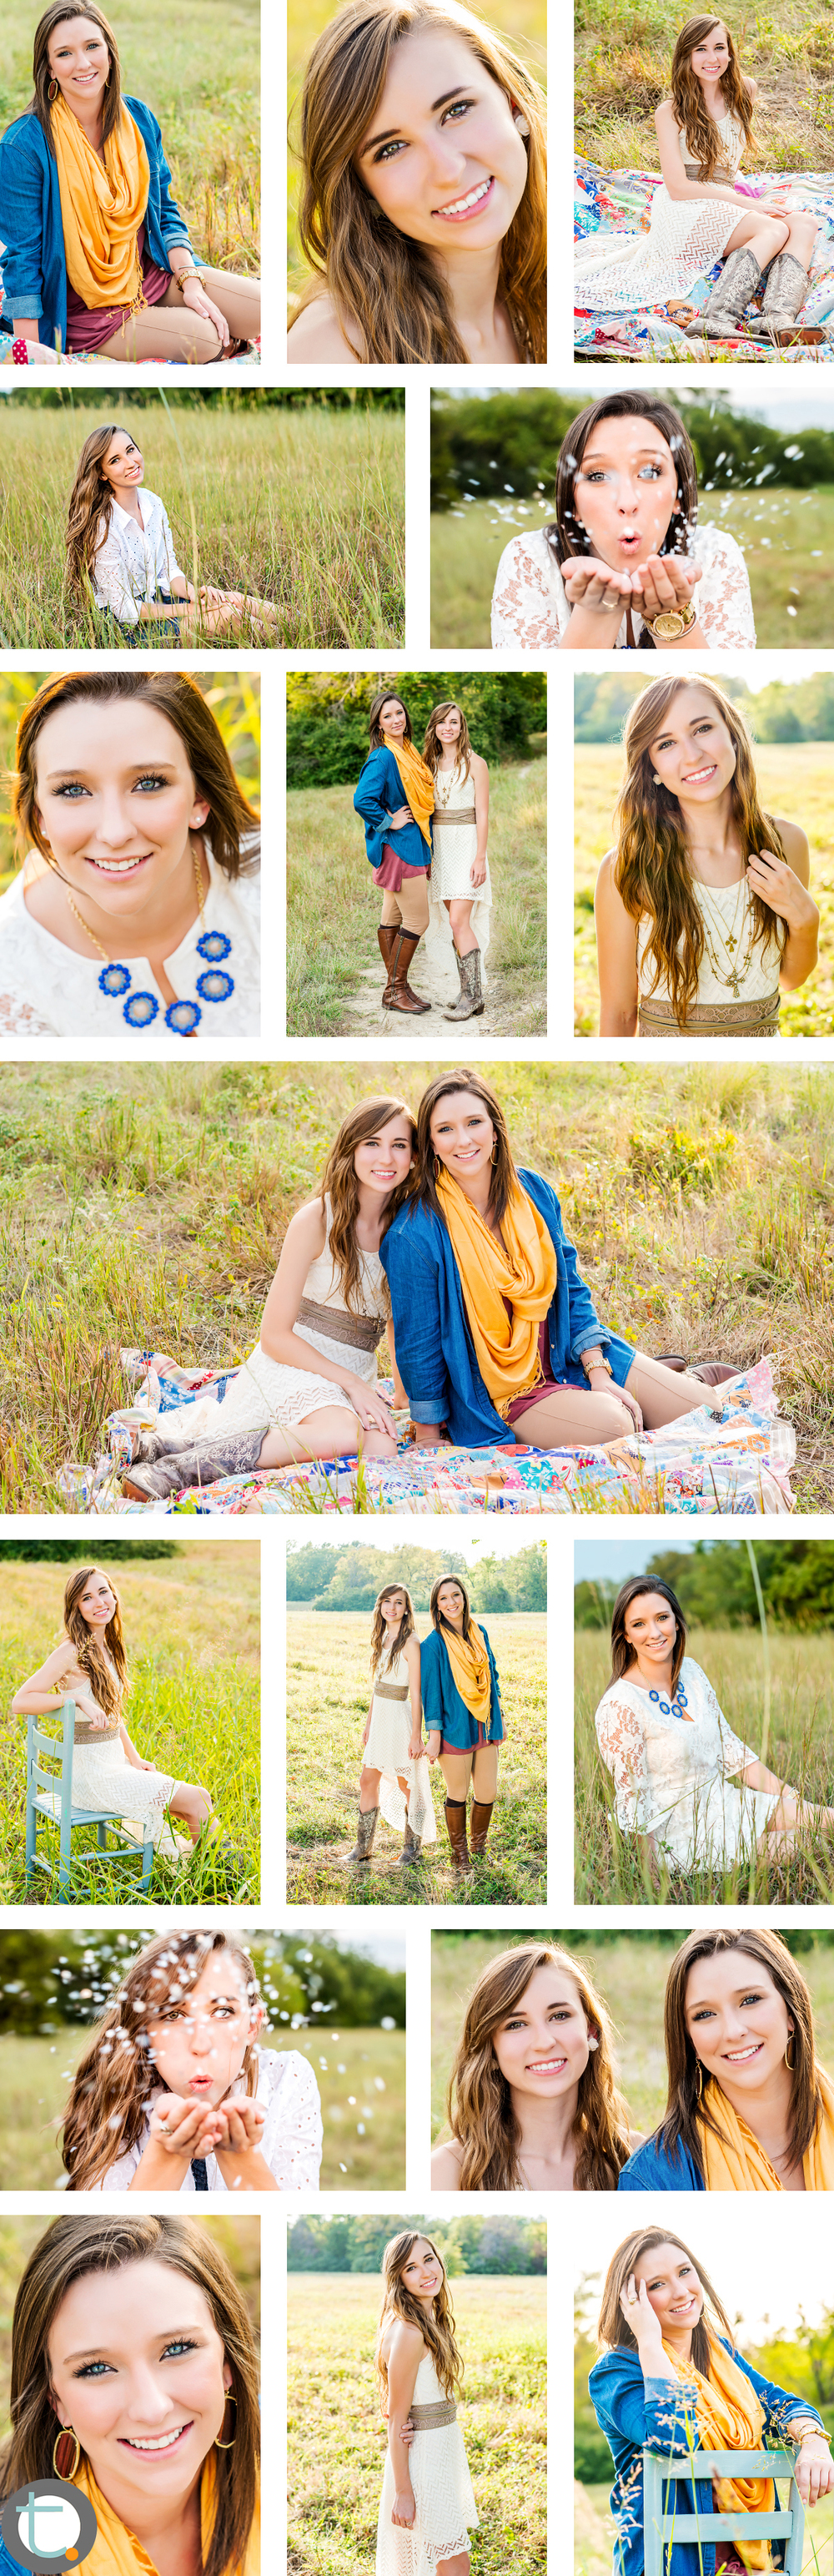 Sisters_family_portrait_field_dallas_tracy_allyn_photography.jpg